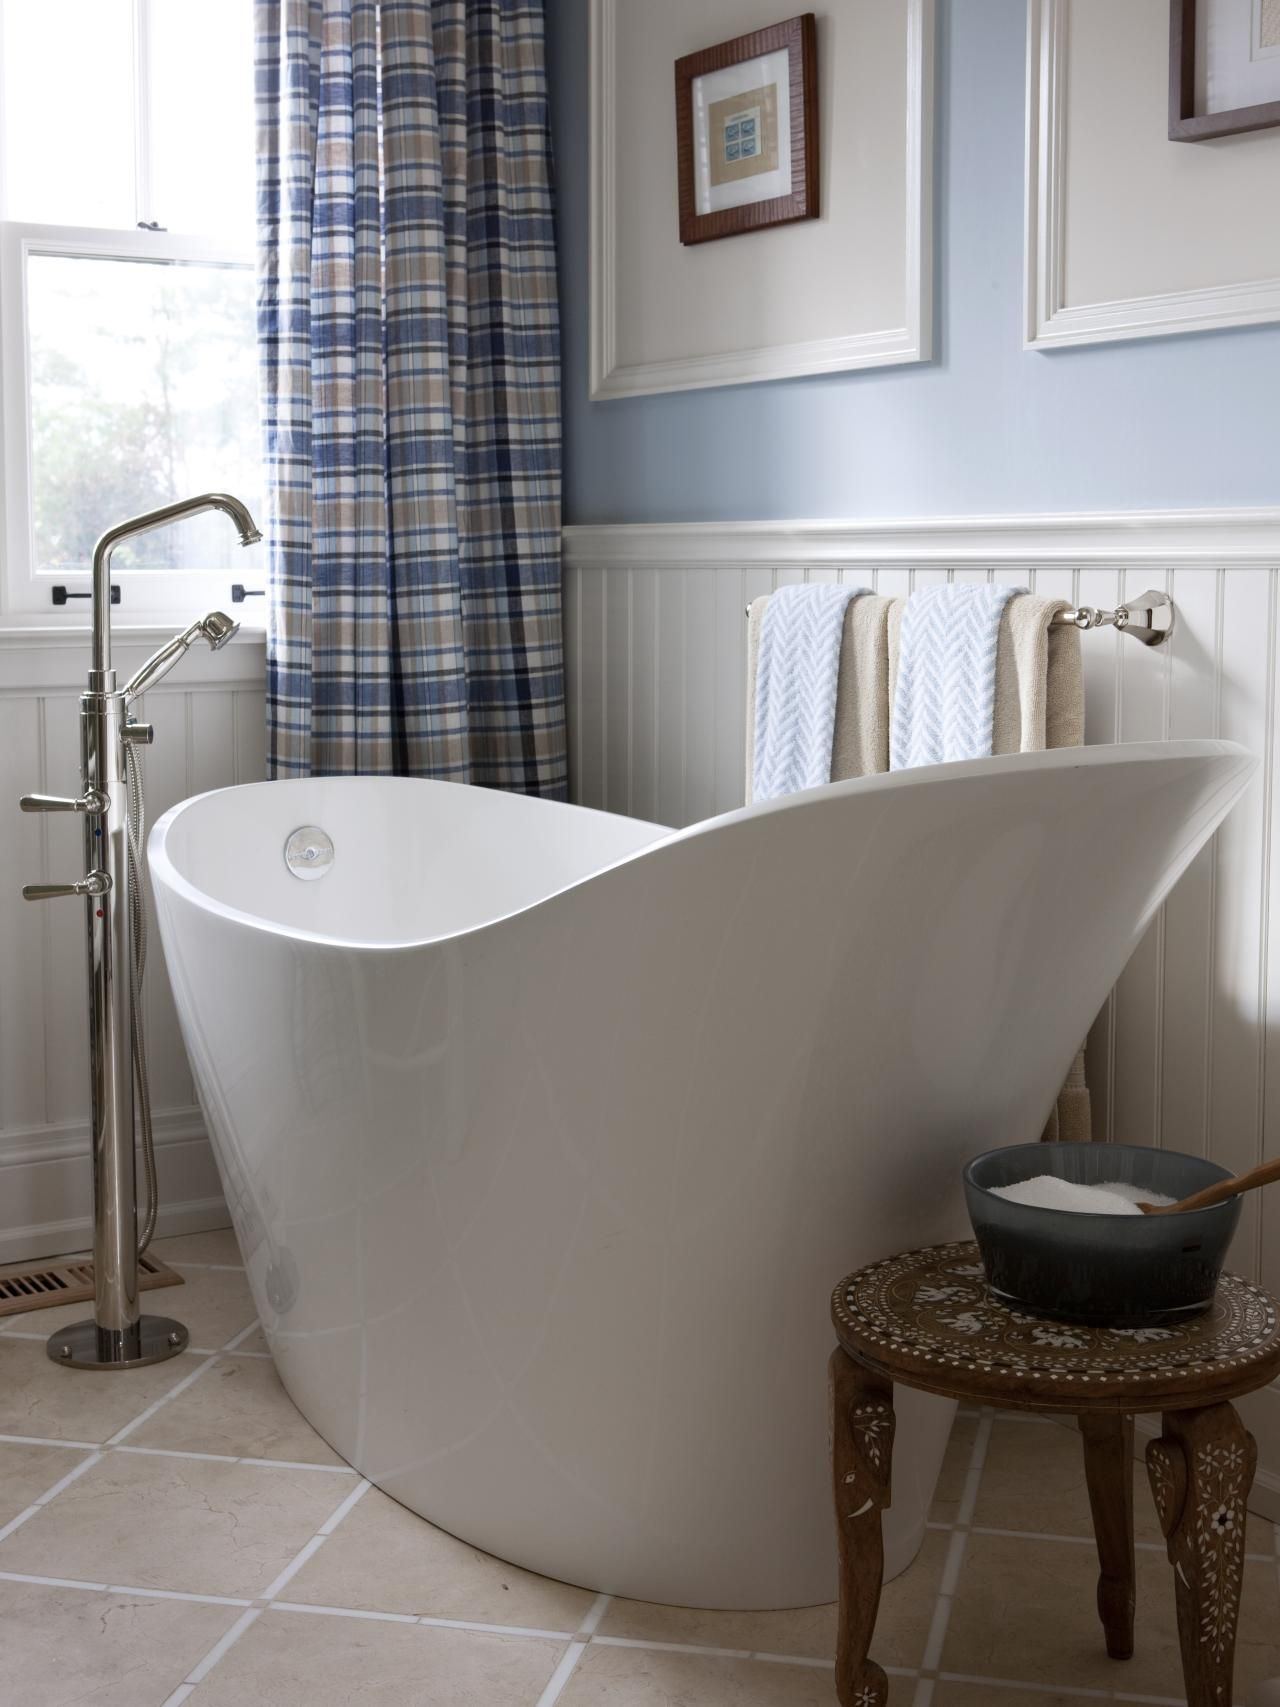 Pictures Of Beautiful Luxury Bathtubs   Ideas U0026 Inspiration